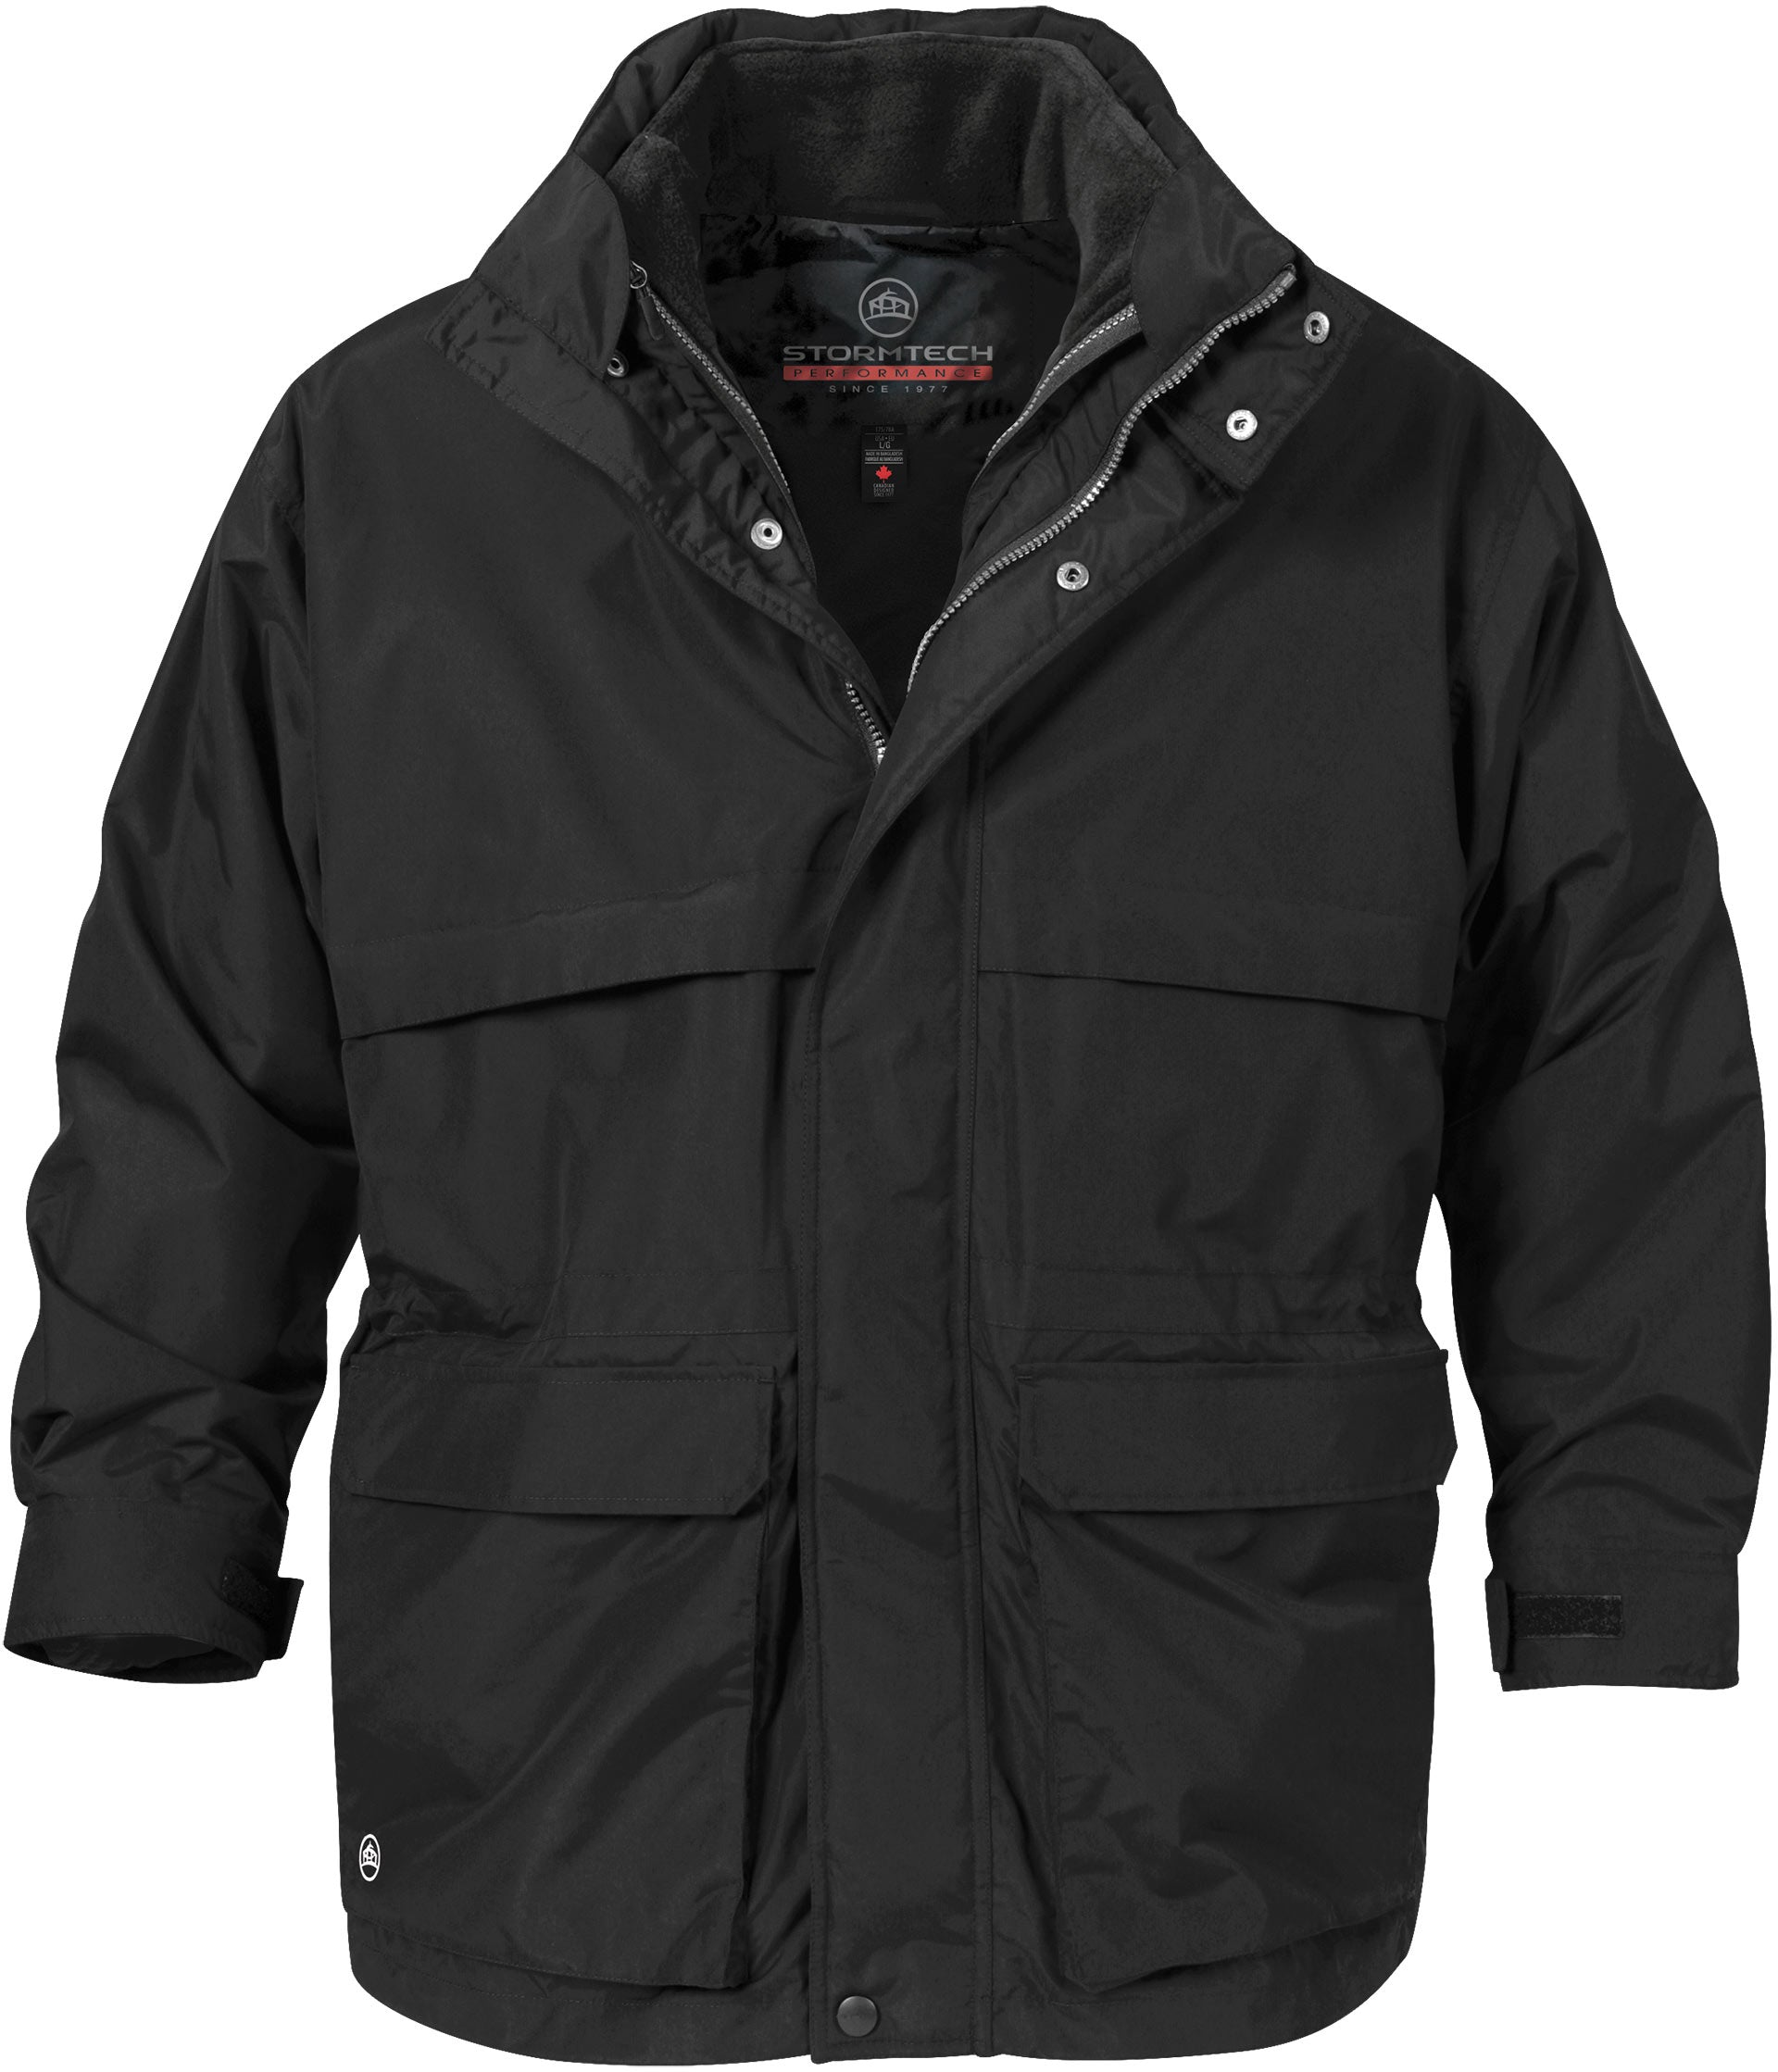 STORMTECH MEN'S EXPLORER 3-IN-1 SYSTEM PARKA